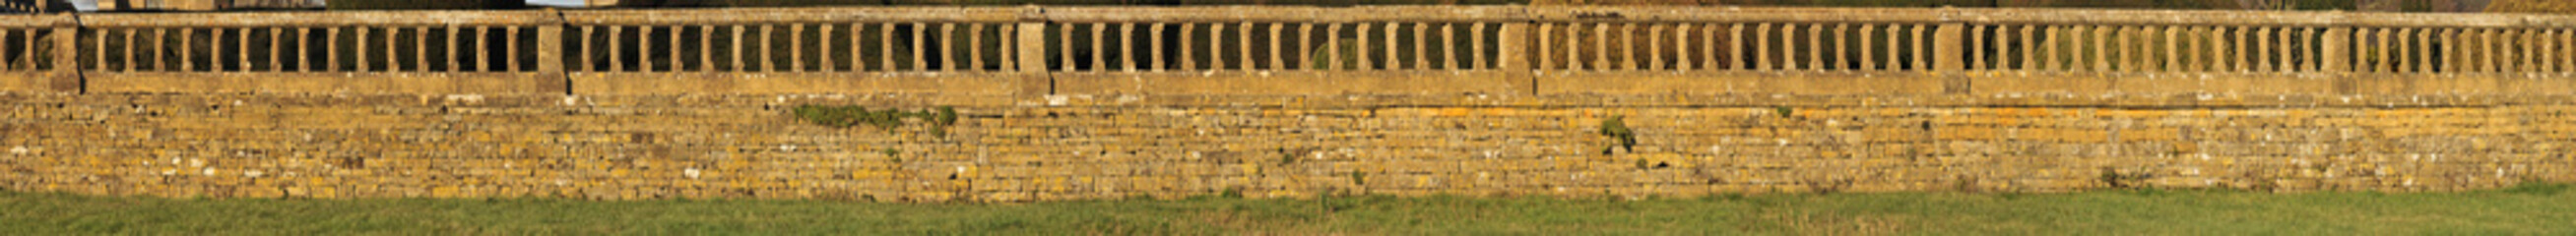 A long panoramic picture of an old wall,